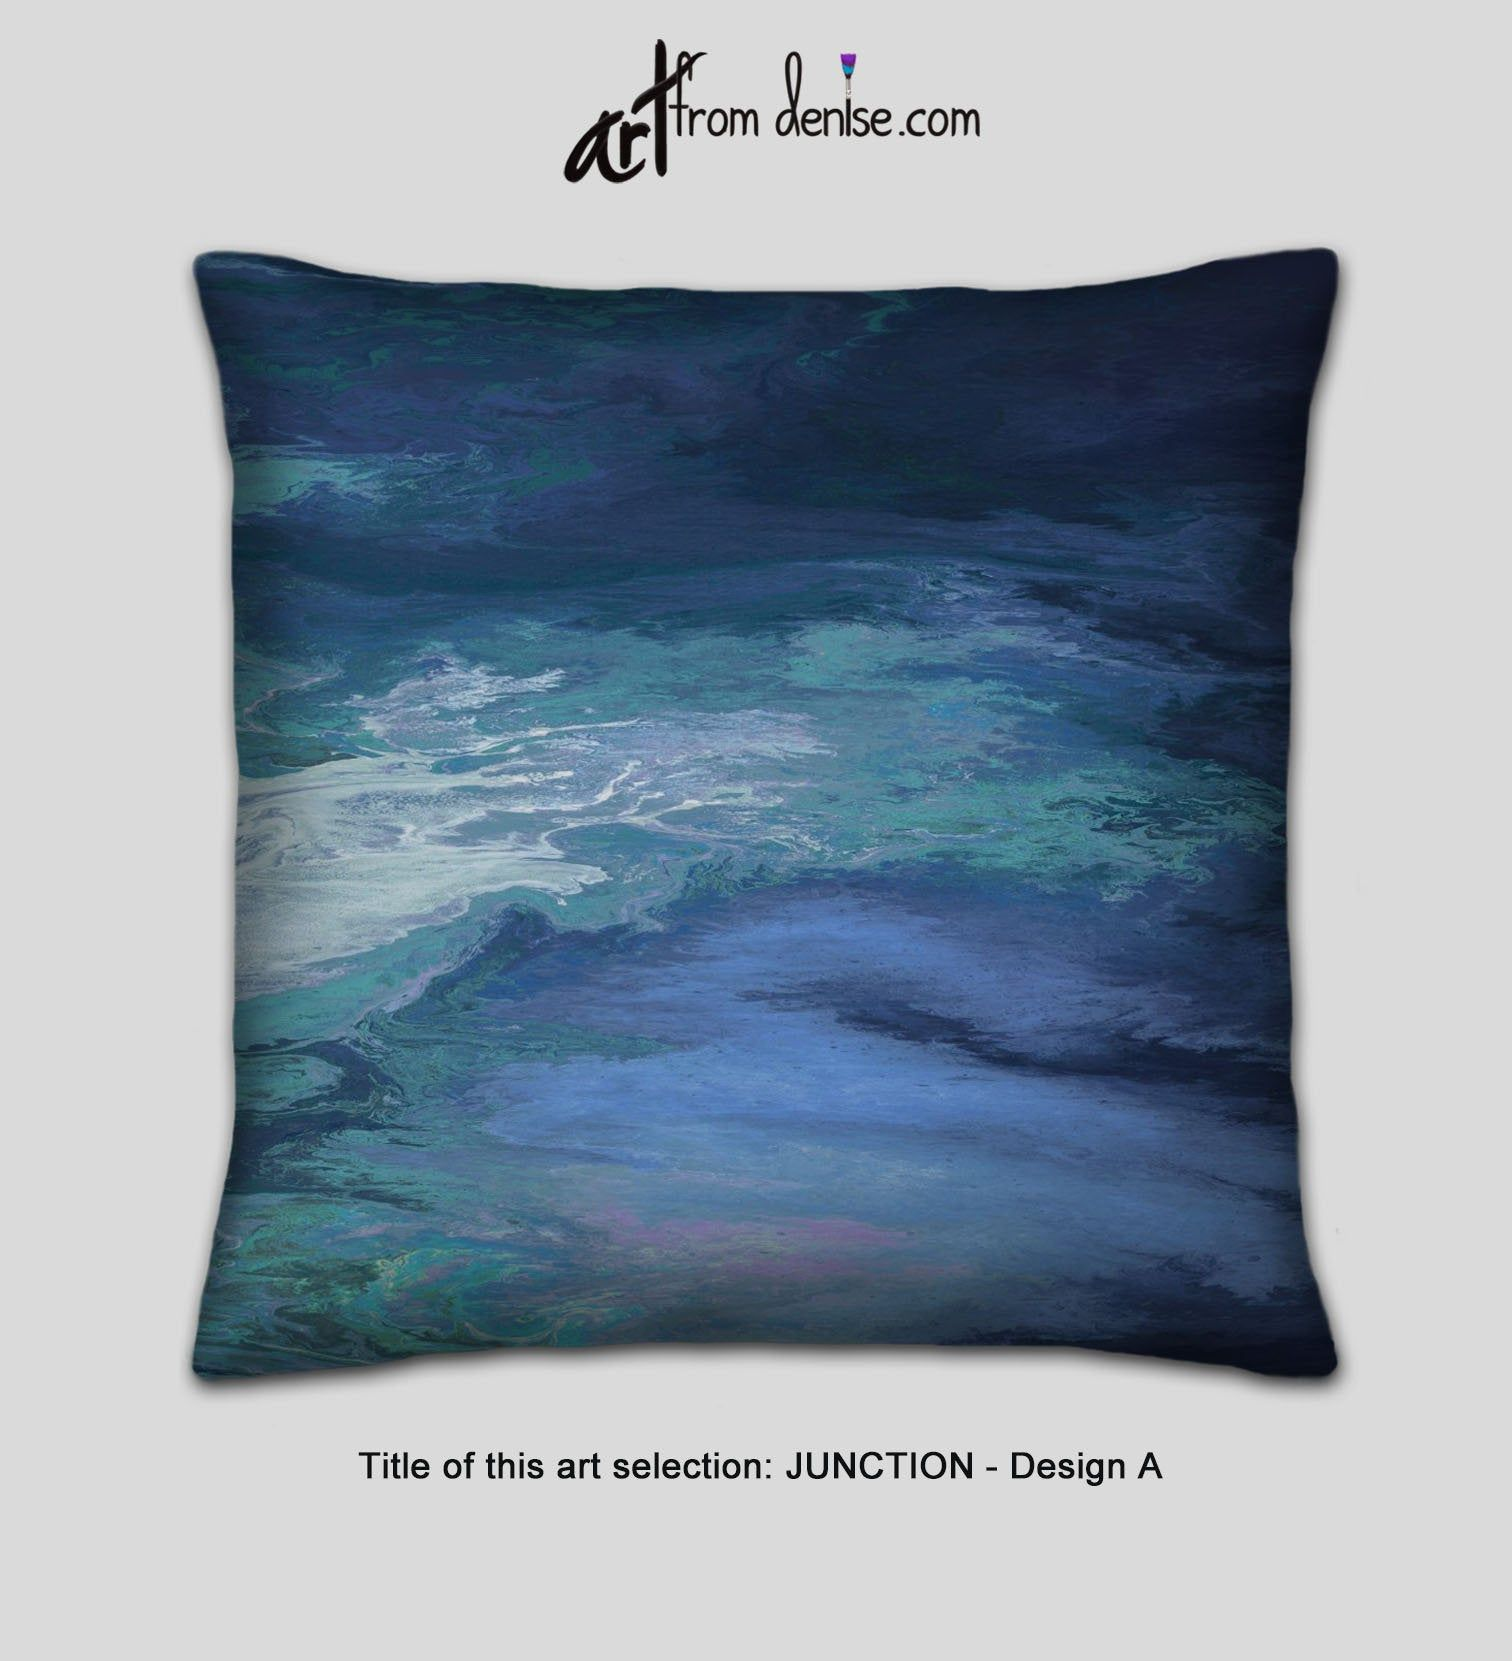 Navy Throw Pillows Gray Teal And Blue Decorative Pillows For Etsy Couch Pillow Sets Navy Blue Decorative Pillows Teal Pillows Decorative